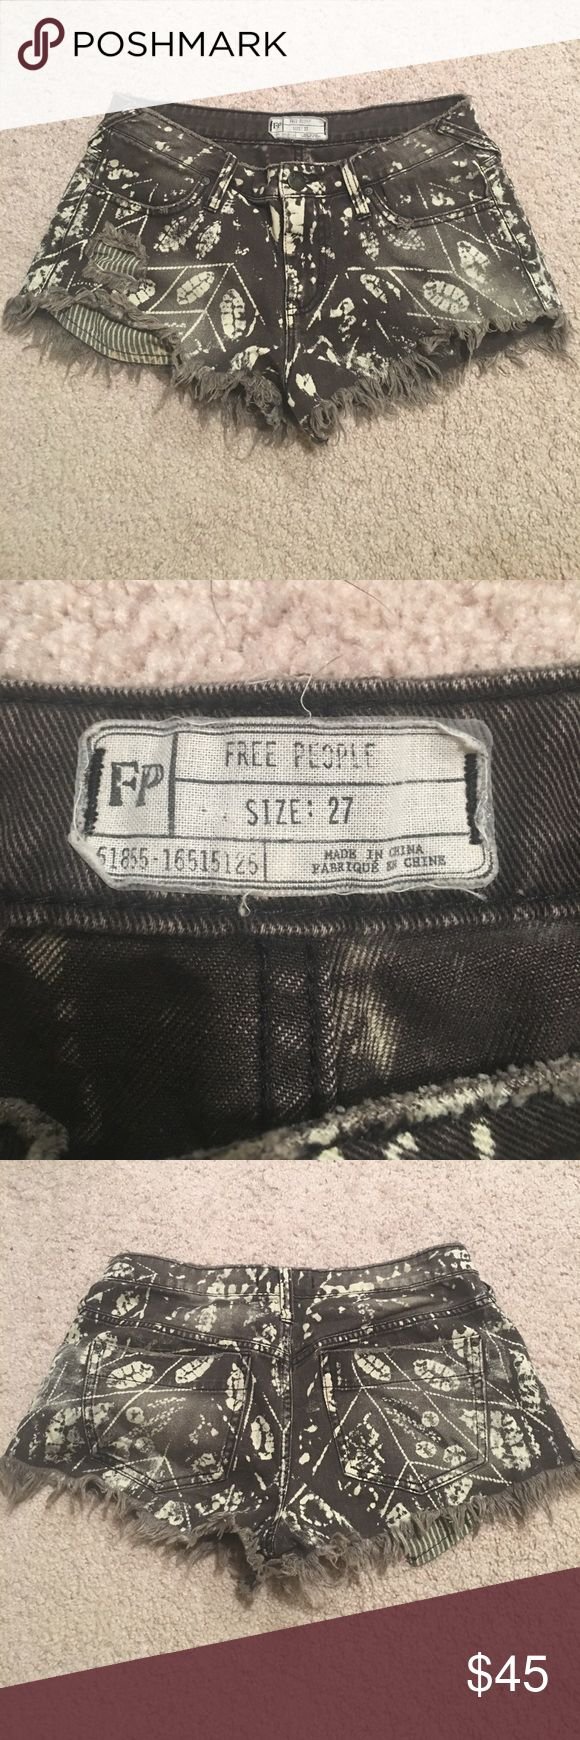 Free people Aztec shorts Free People Aztec shorts. Great condition but too small for me. Free People Shorts